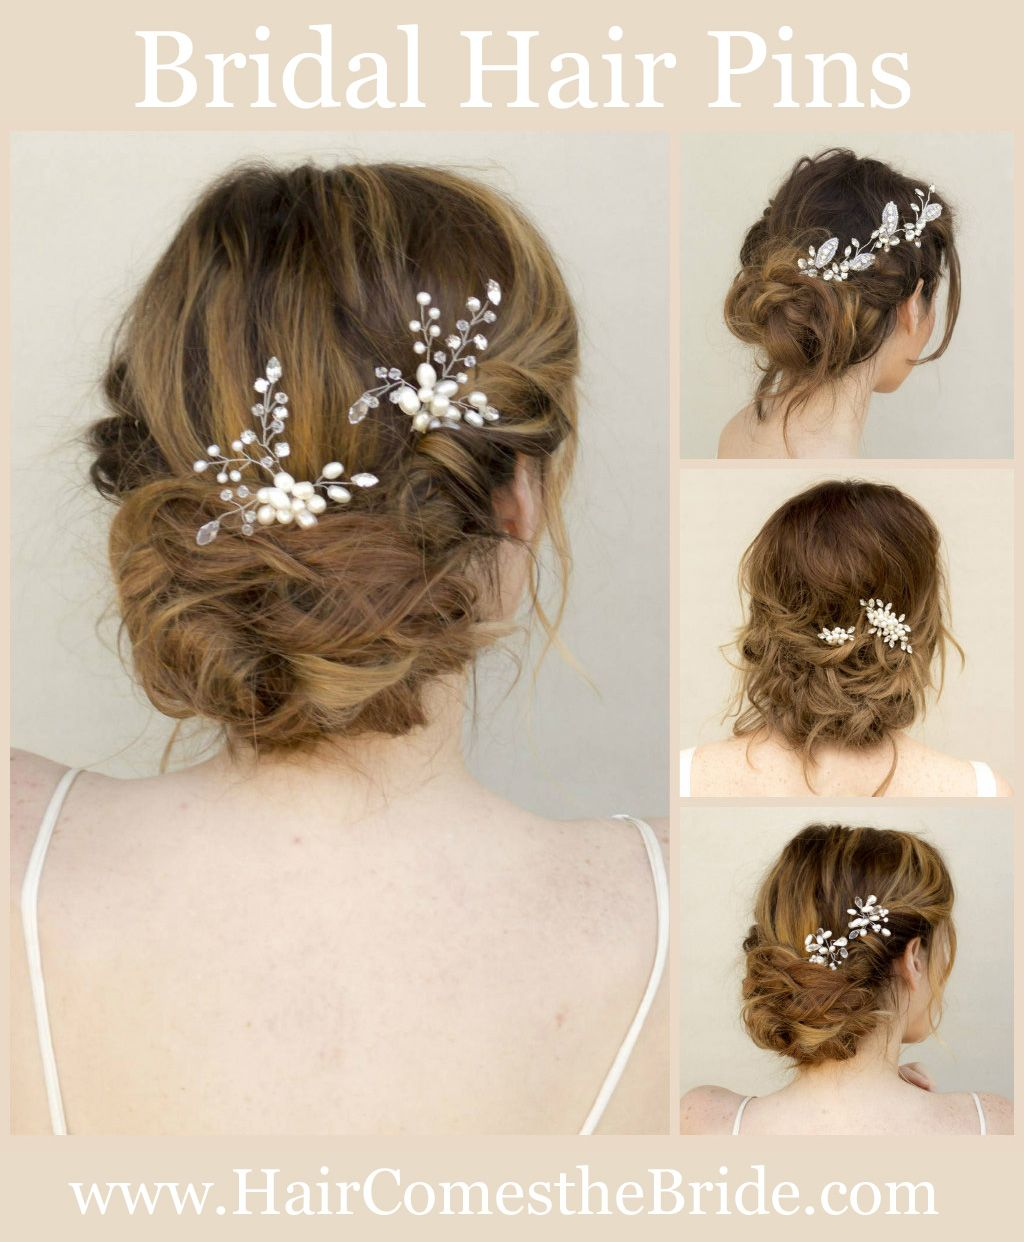 Bridal Hair Pins by Hair Comes the Bride - Quick Shipping - Try ...